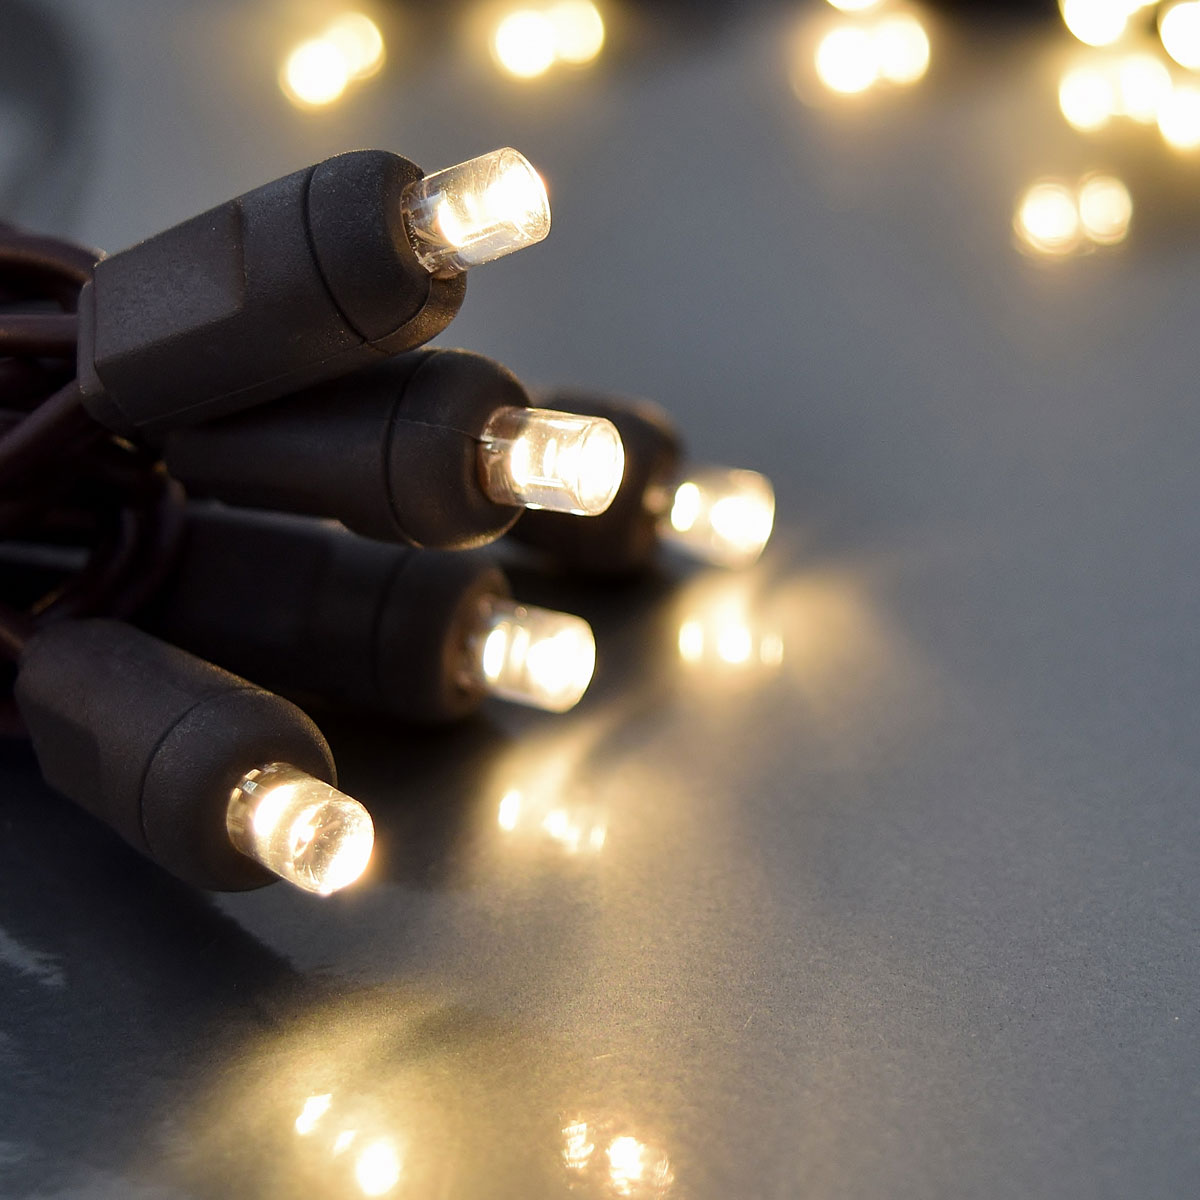 FLEXCHANGE™ LED String Light Strand - 50 Lights - Warm White/Brown Cord 724240